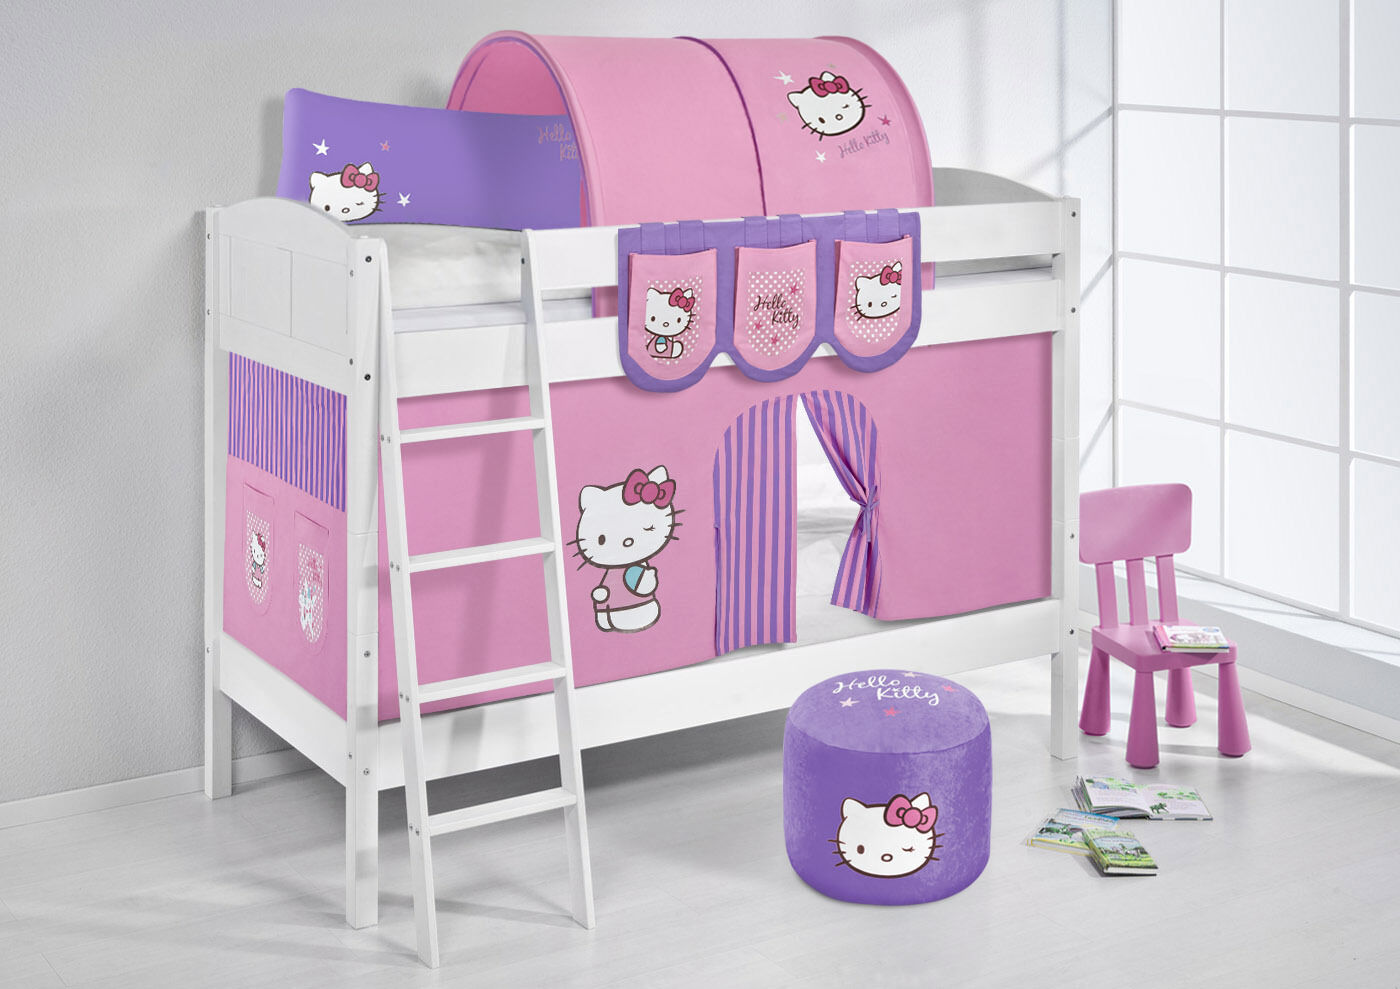 Superposé surelevé spielbett Ida divisible 4106 NOUVEAU LILOKIDS Hello Kitty violet